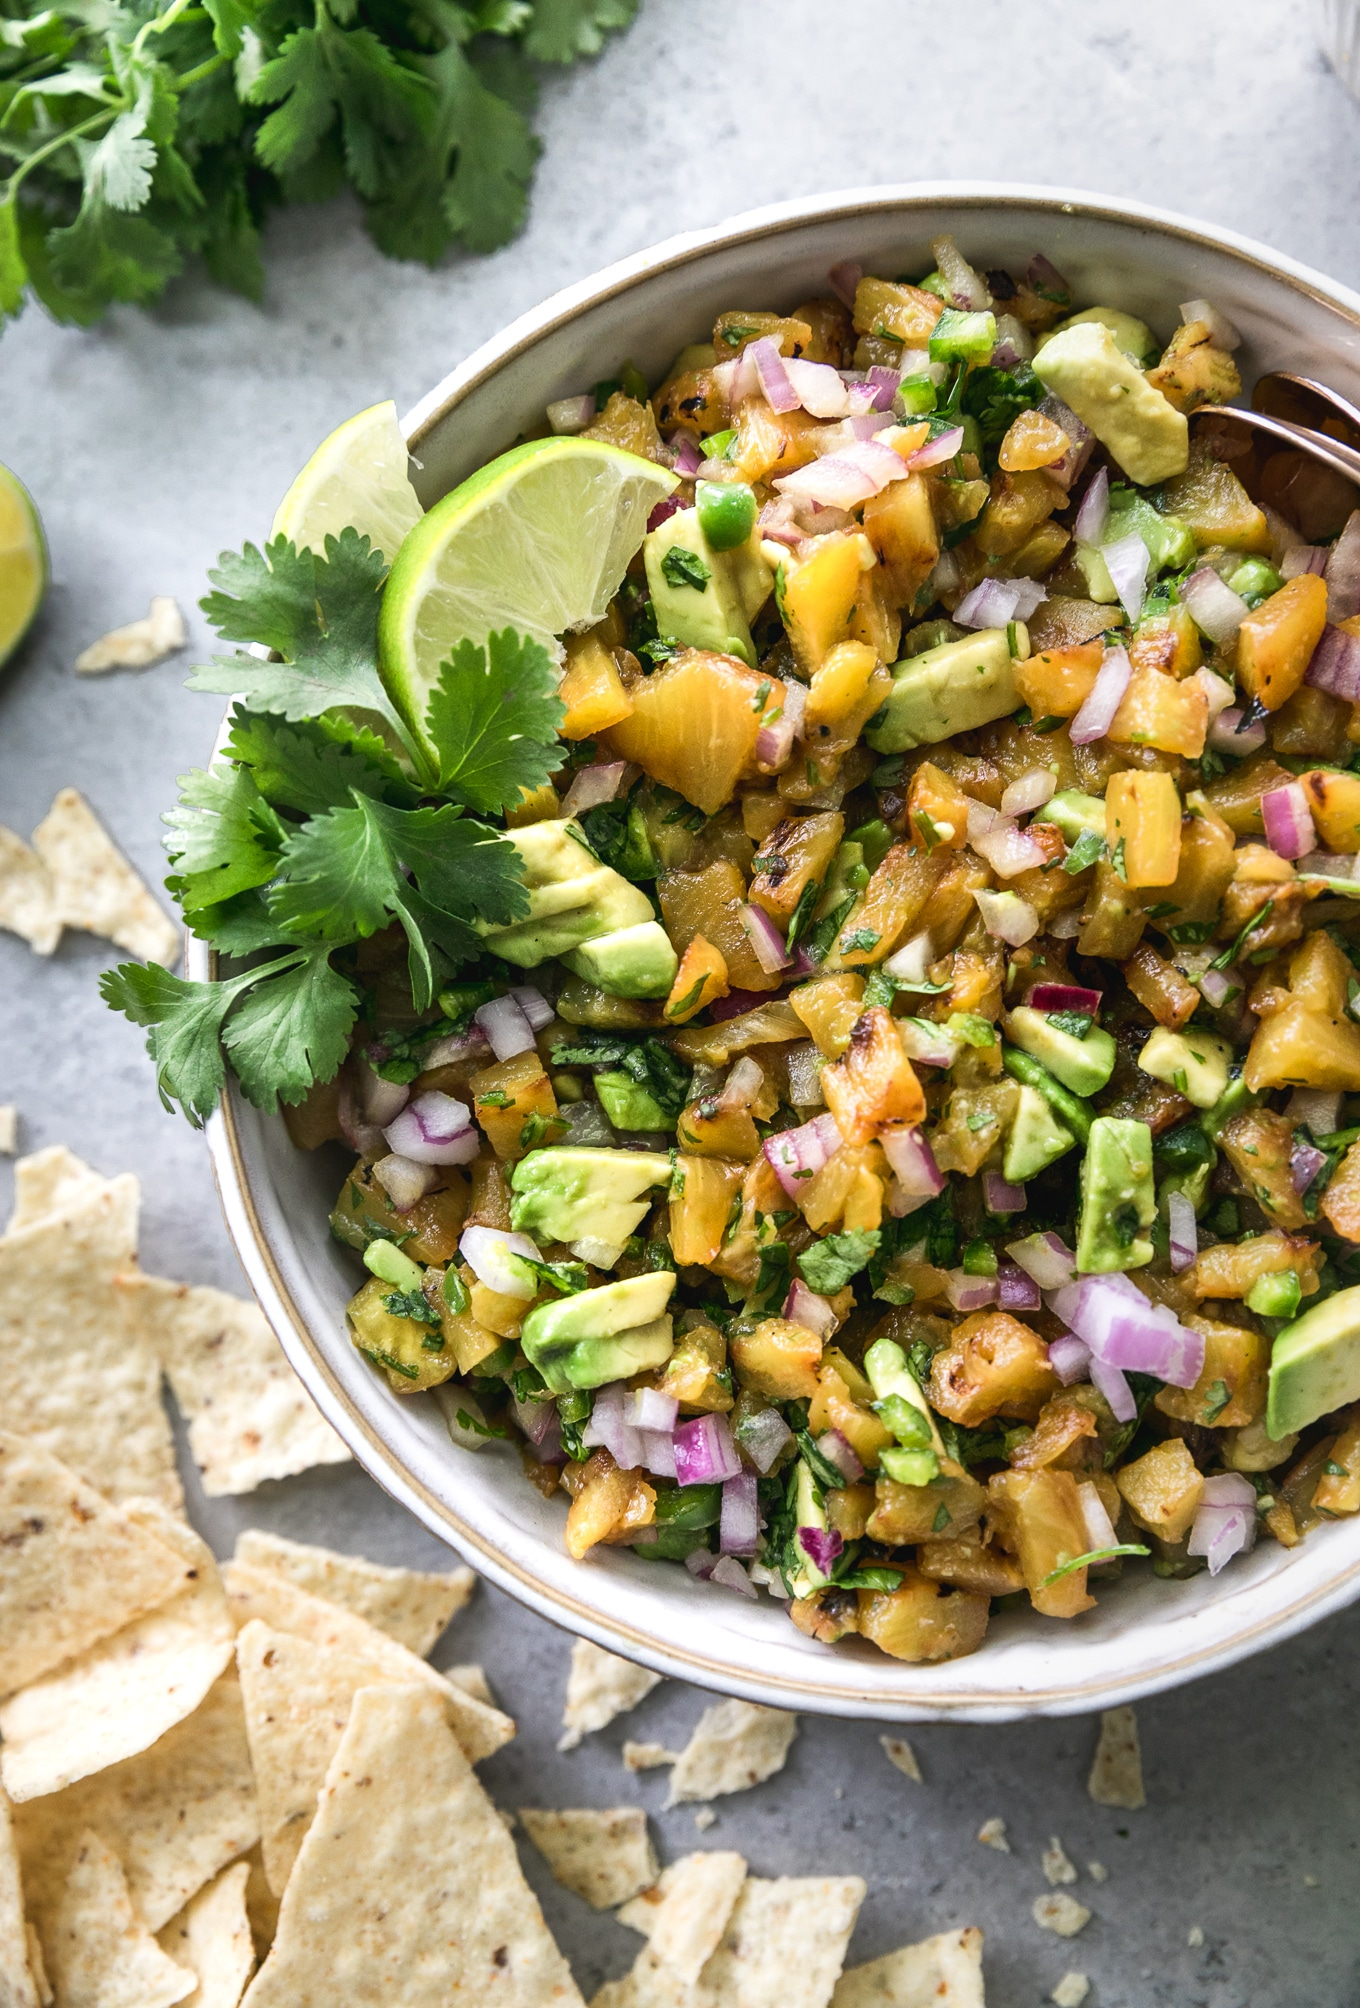 Overhead close up shot of a bowl of grilled pineapple avocado salsa with chips scattered around next to it